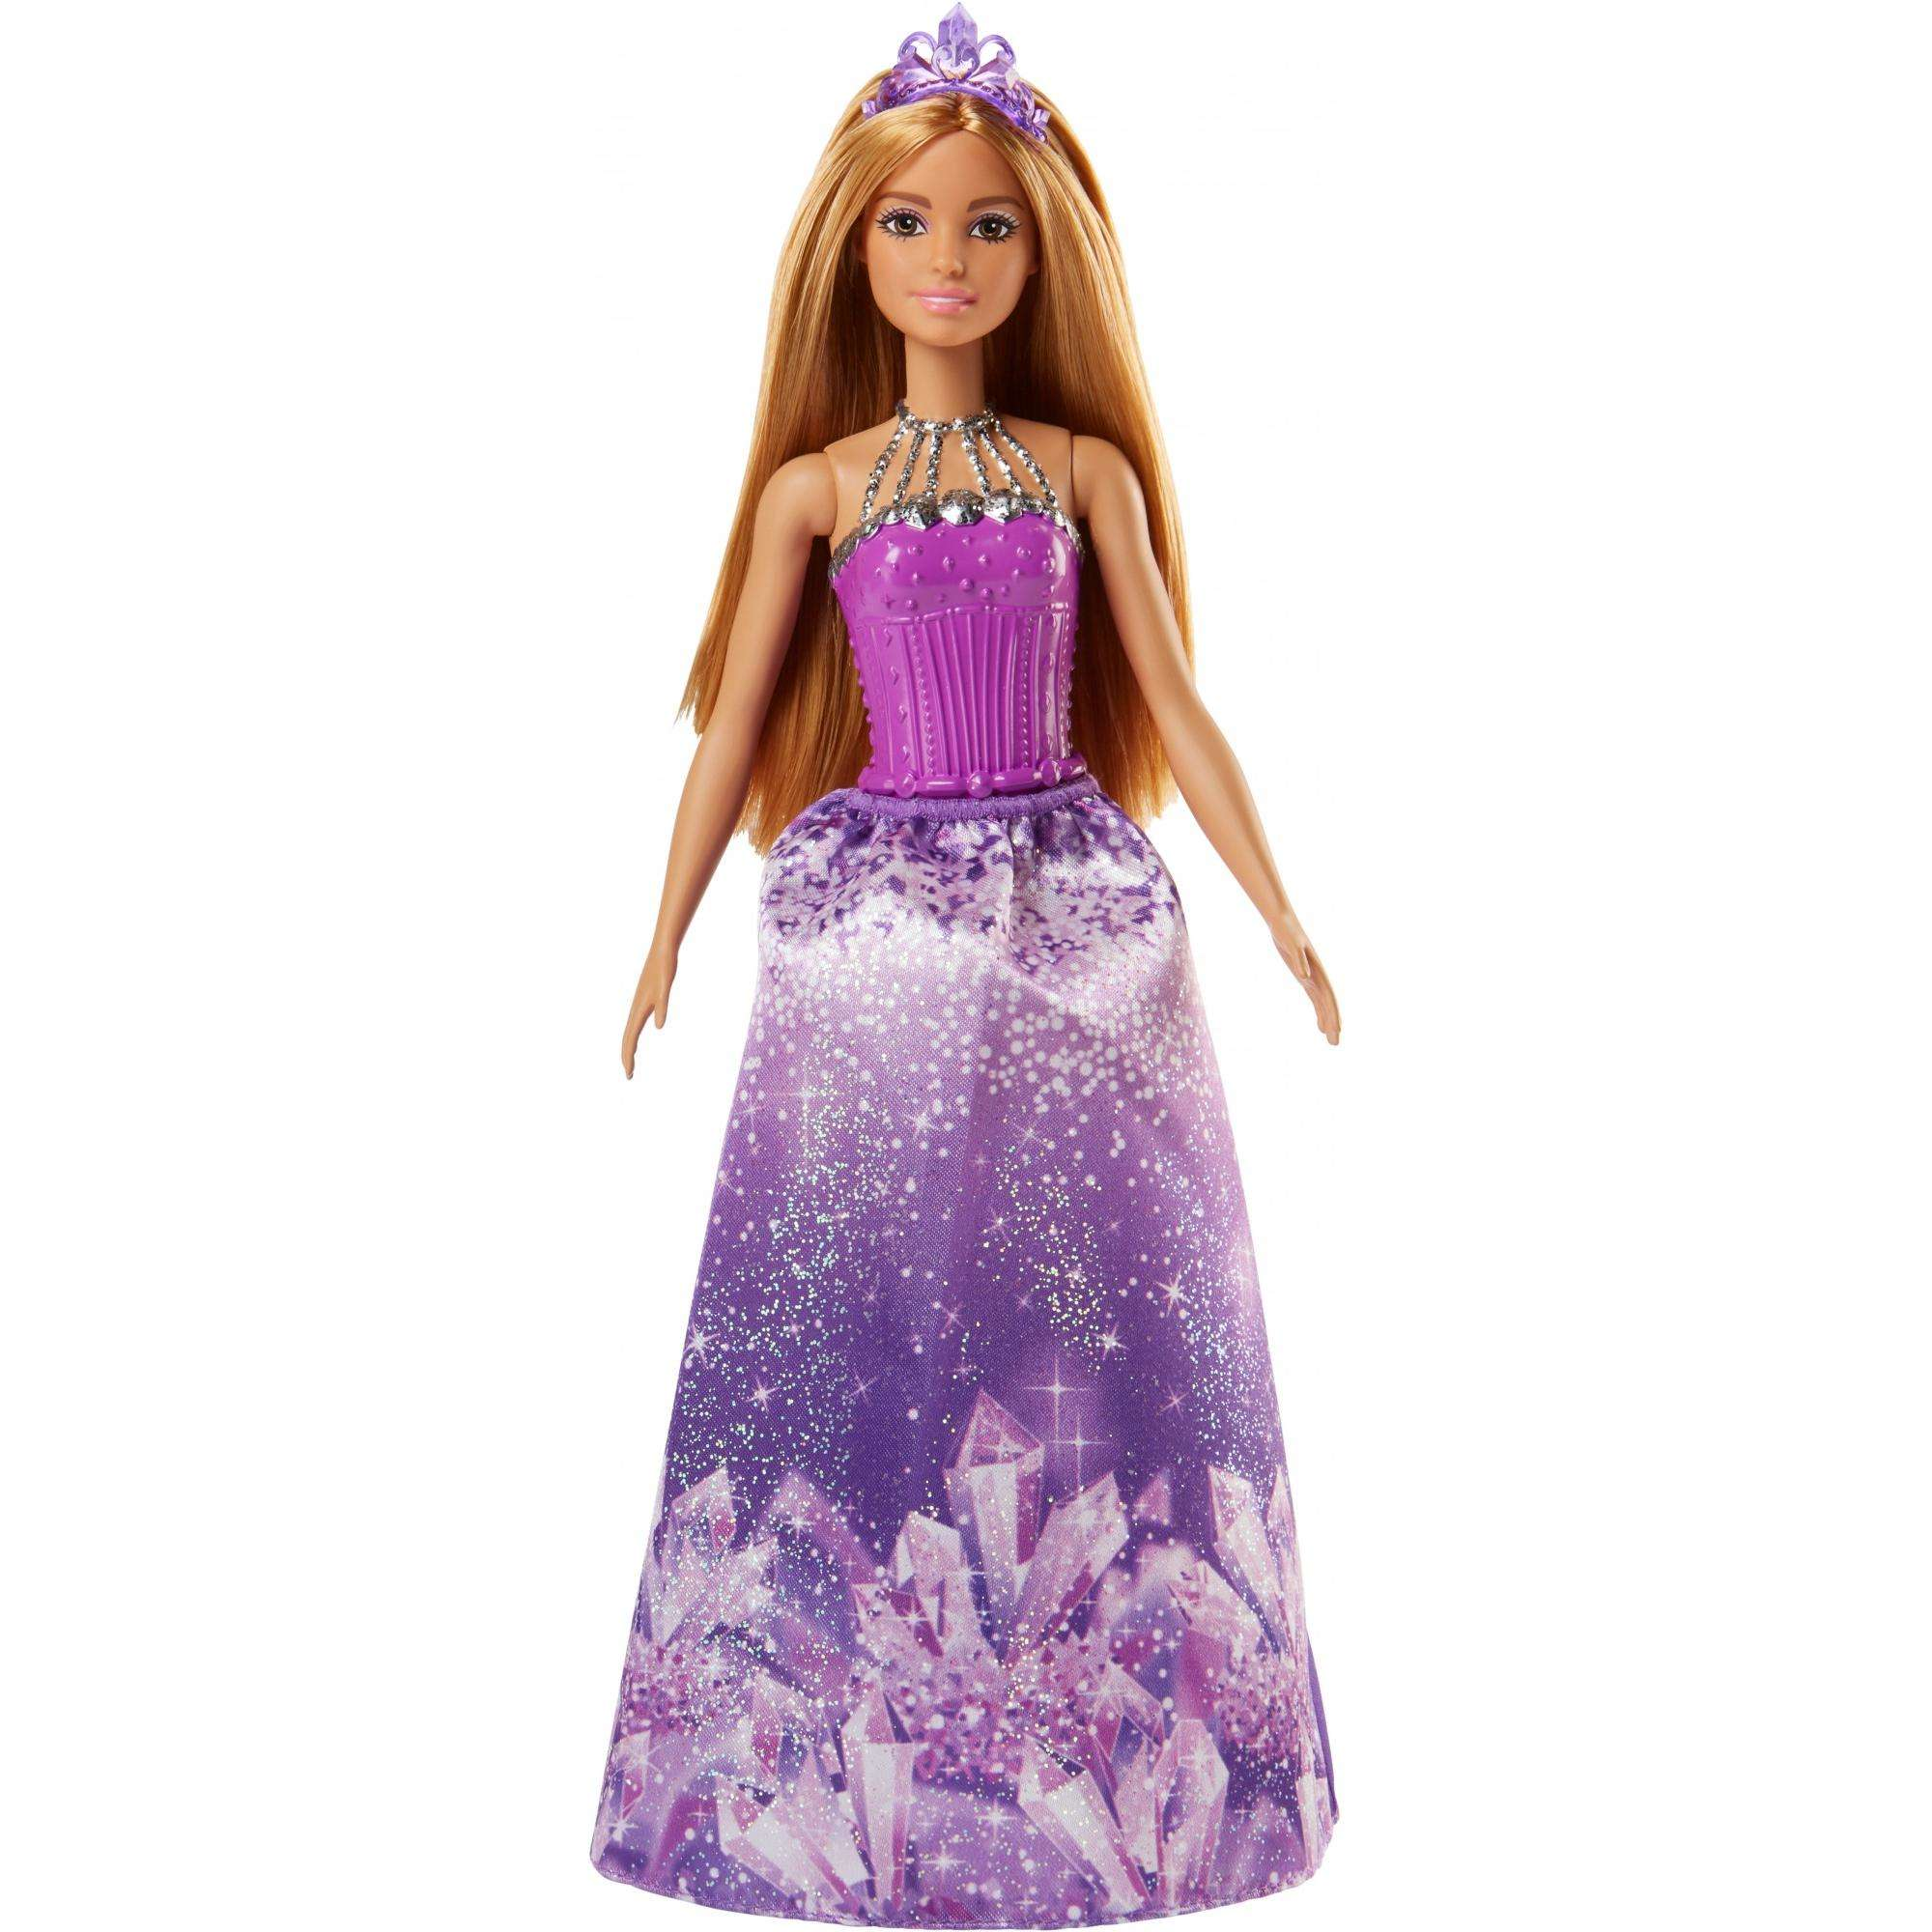 Barbie Dreamtopia Princess Doll with Purple Jewel-Themed Skirt